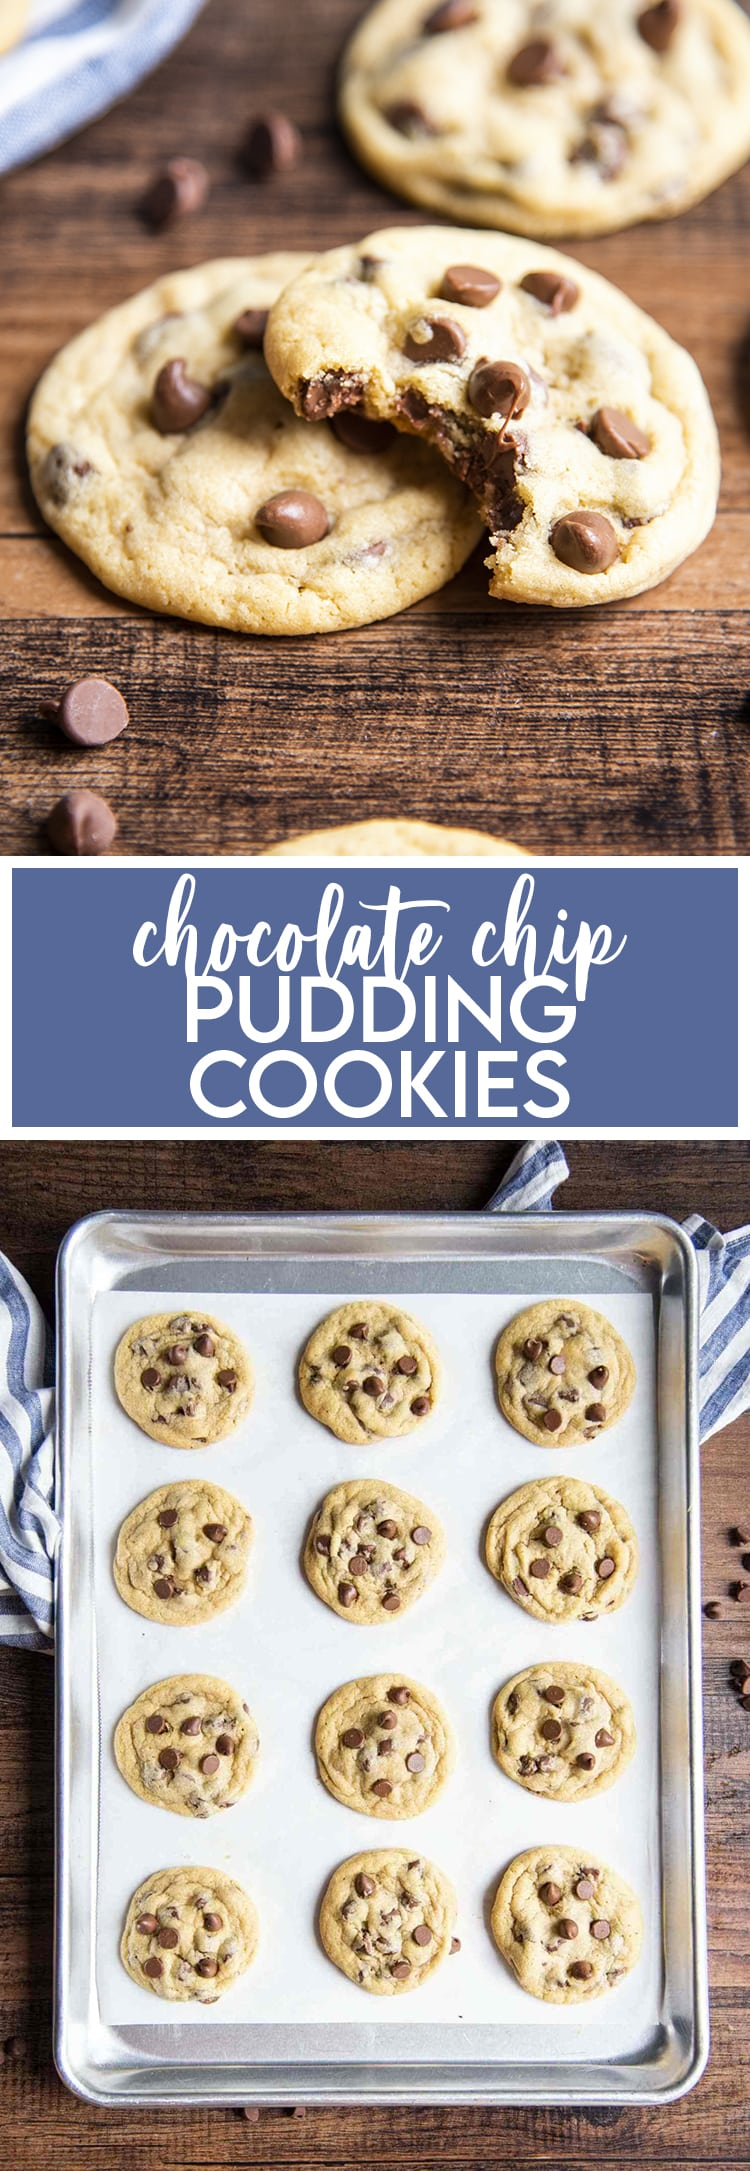 A collage of two photos of chocolate chip pudding cookies. The first is two cookies, one with a bite out of it. The second is pudding chocolate chip cookies on a baking tray.